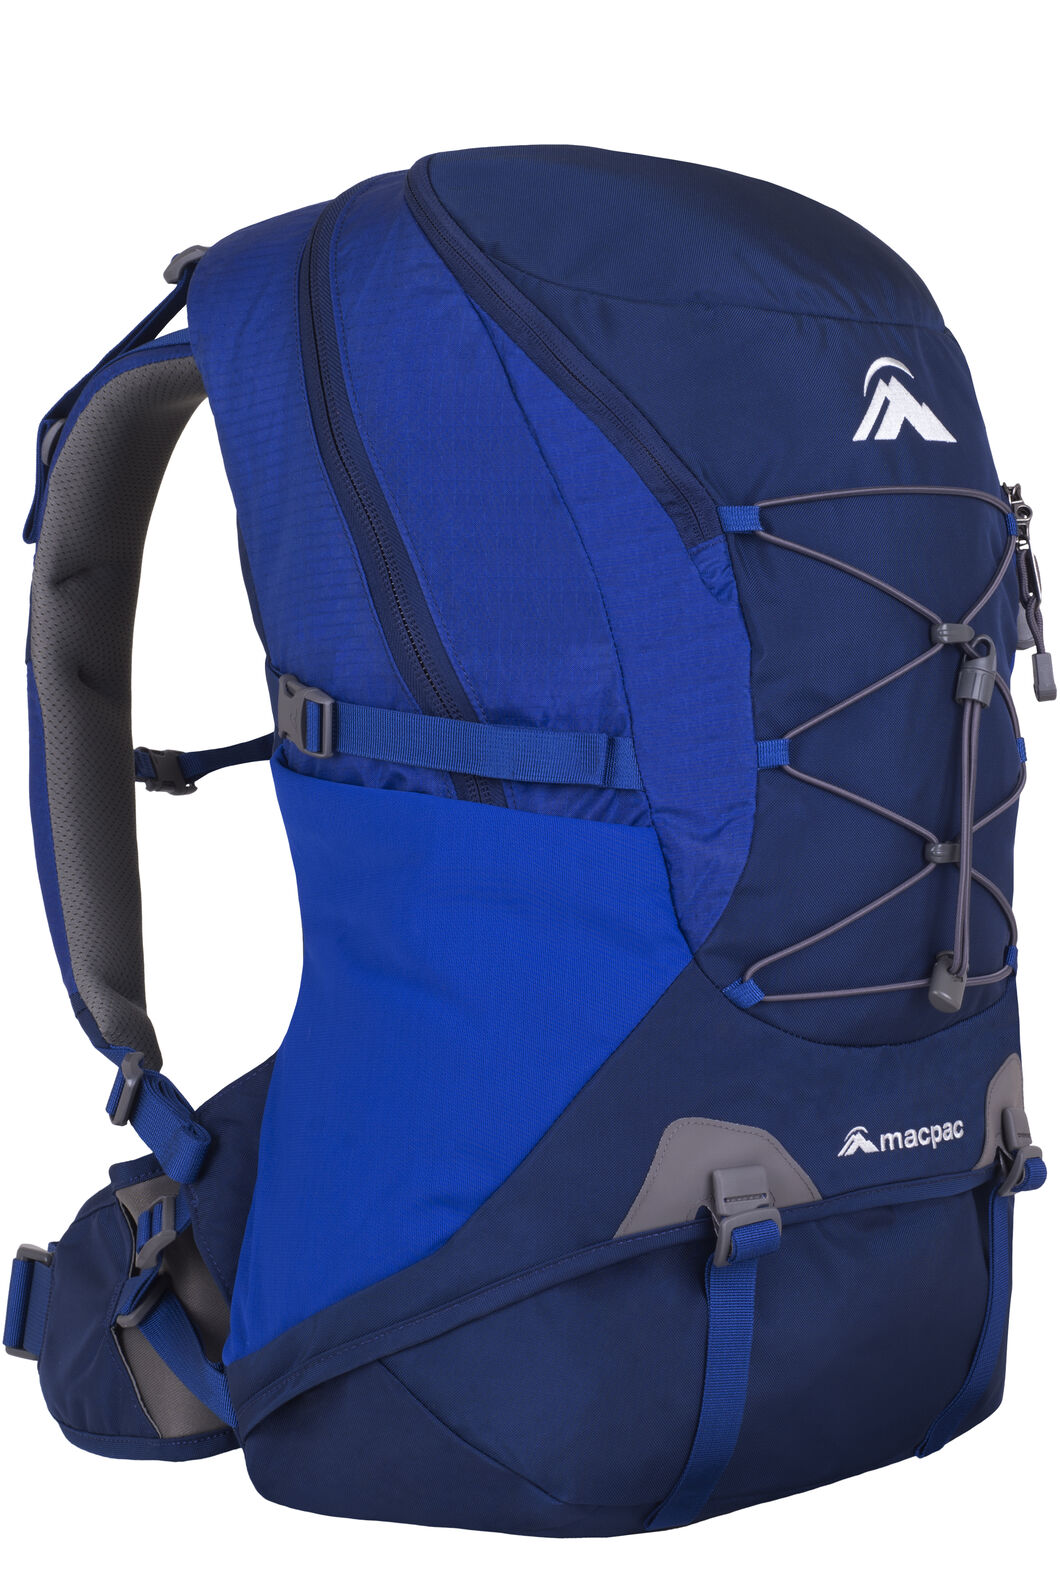 Macpac Voyager 35 Pack, Surf The Web, hi-res